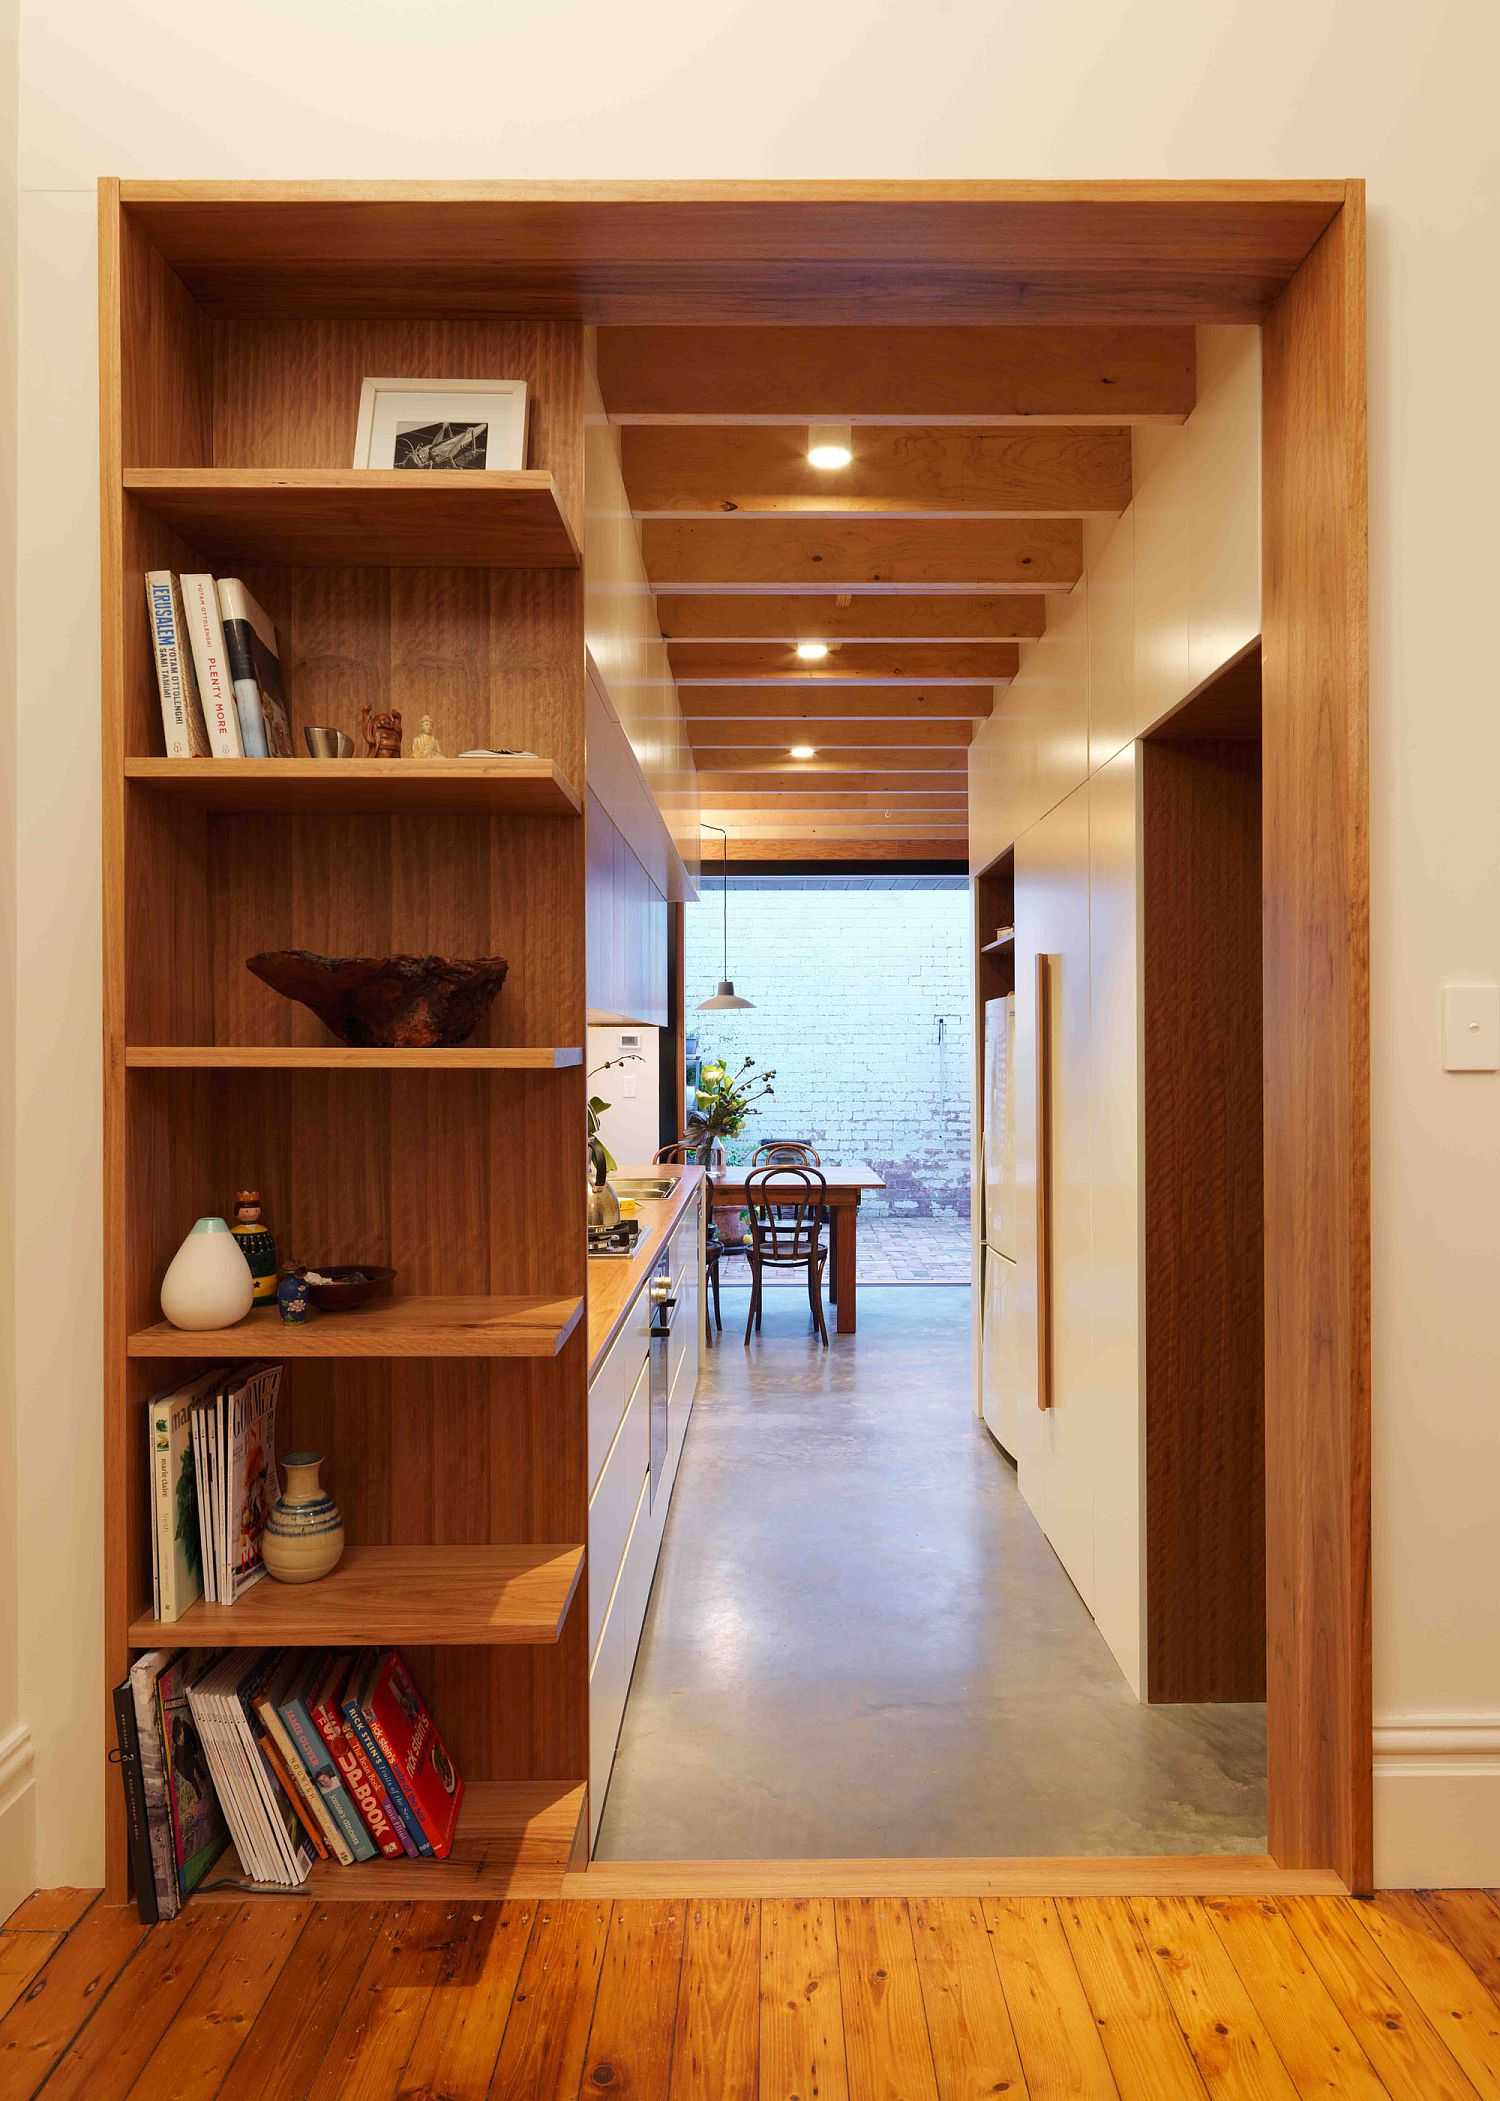 Increase in height and smart shelving alter the interior of the house